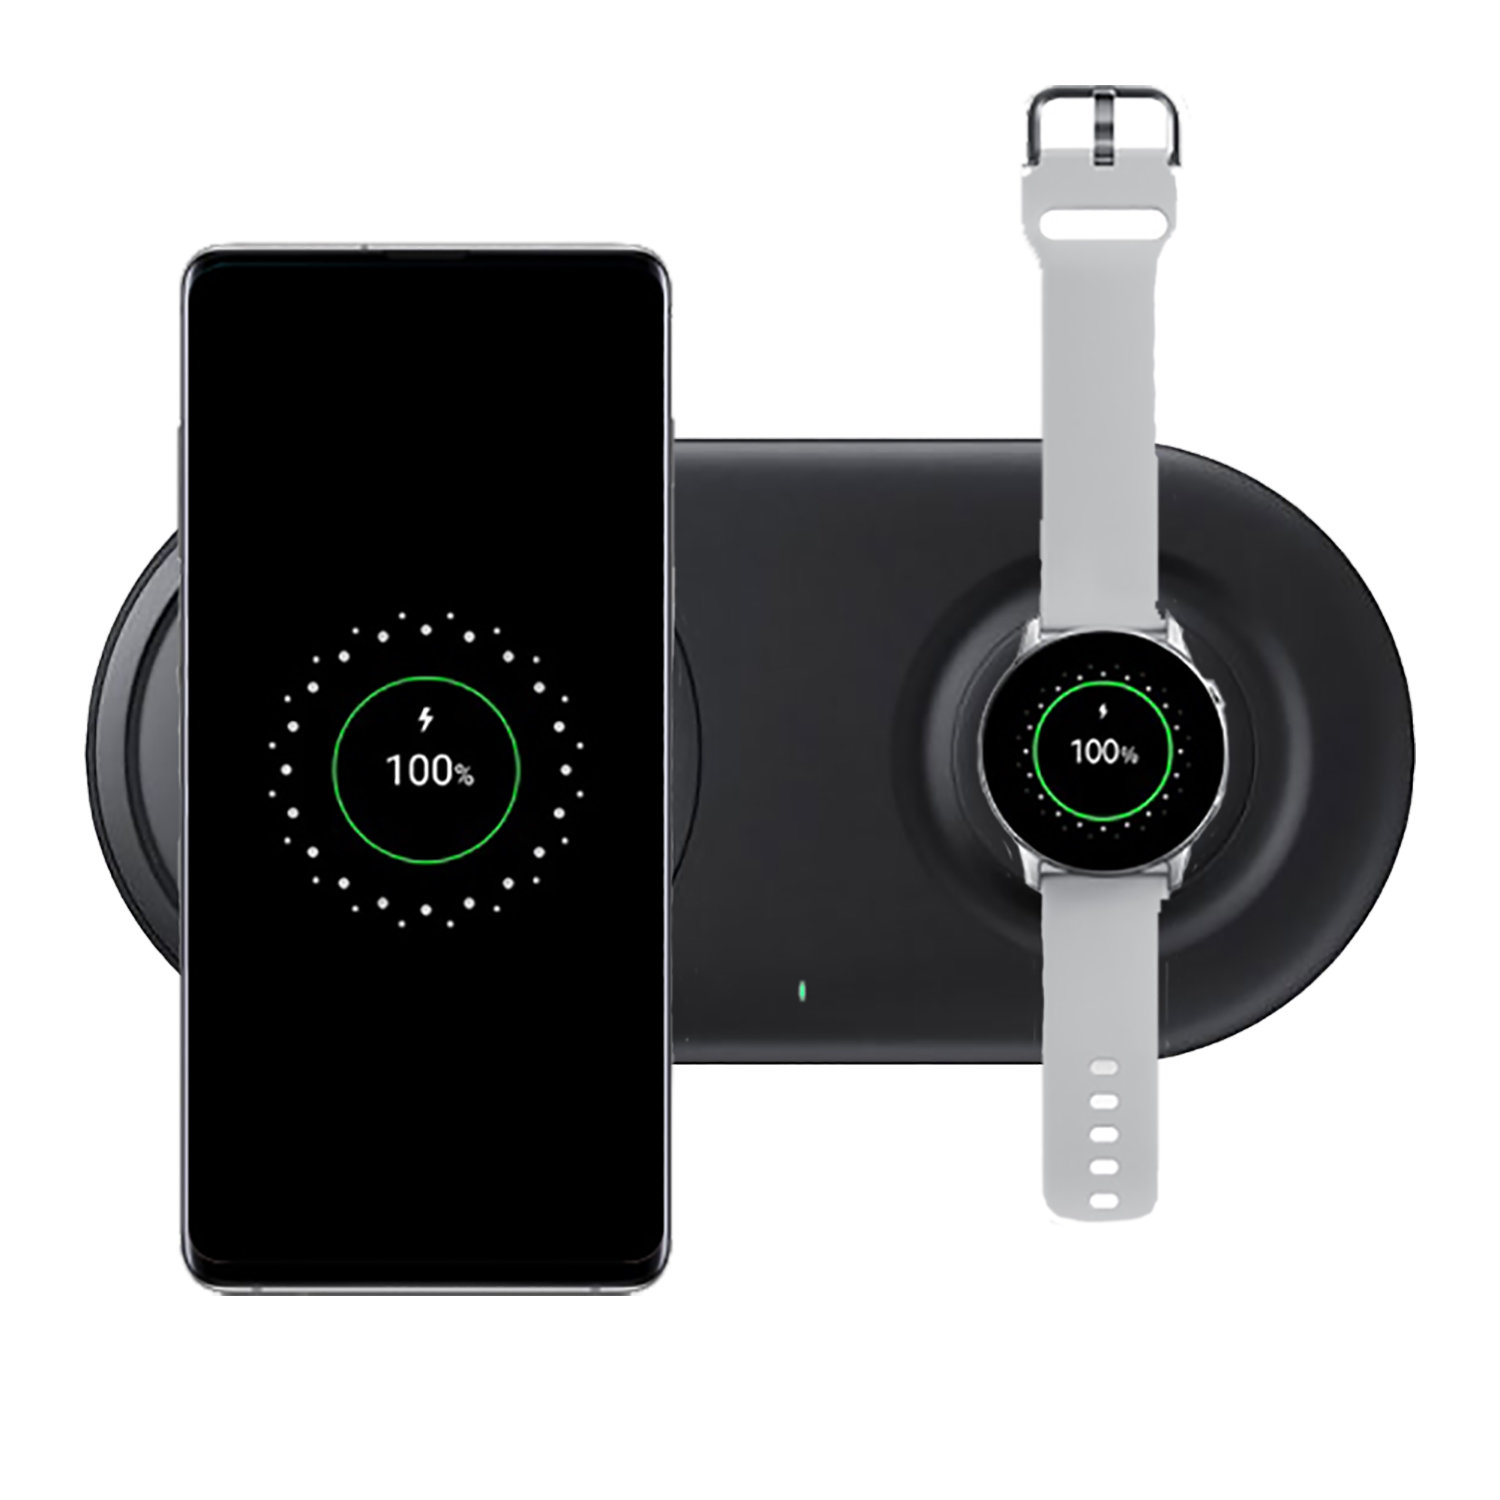 Official Samsung Qi Wireless Fast Charging 2.0 Duo Pad Black